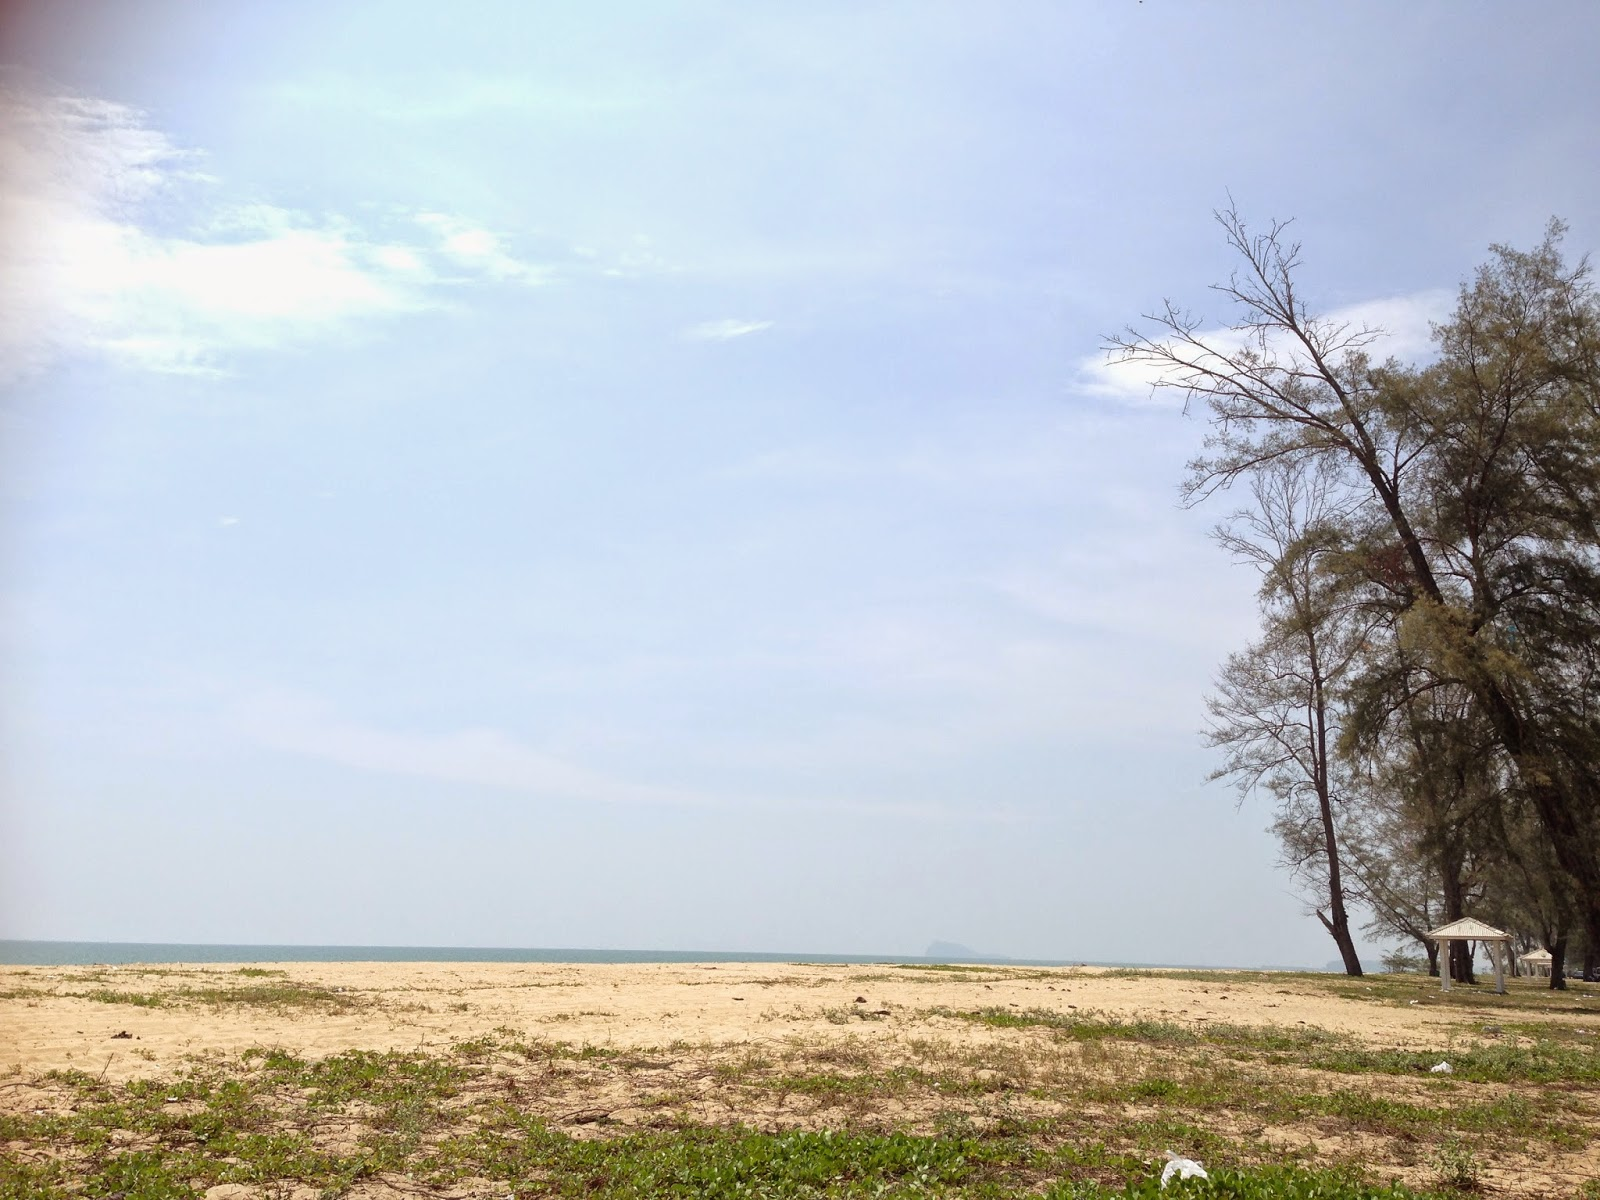 Pantai Bisikan Bayu at noon